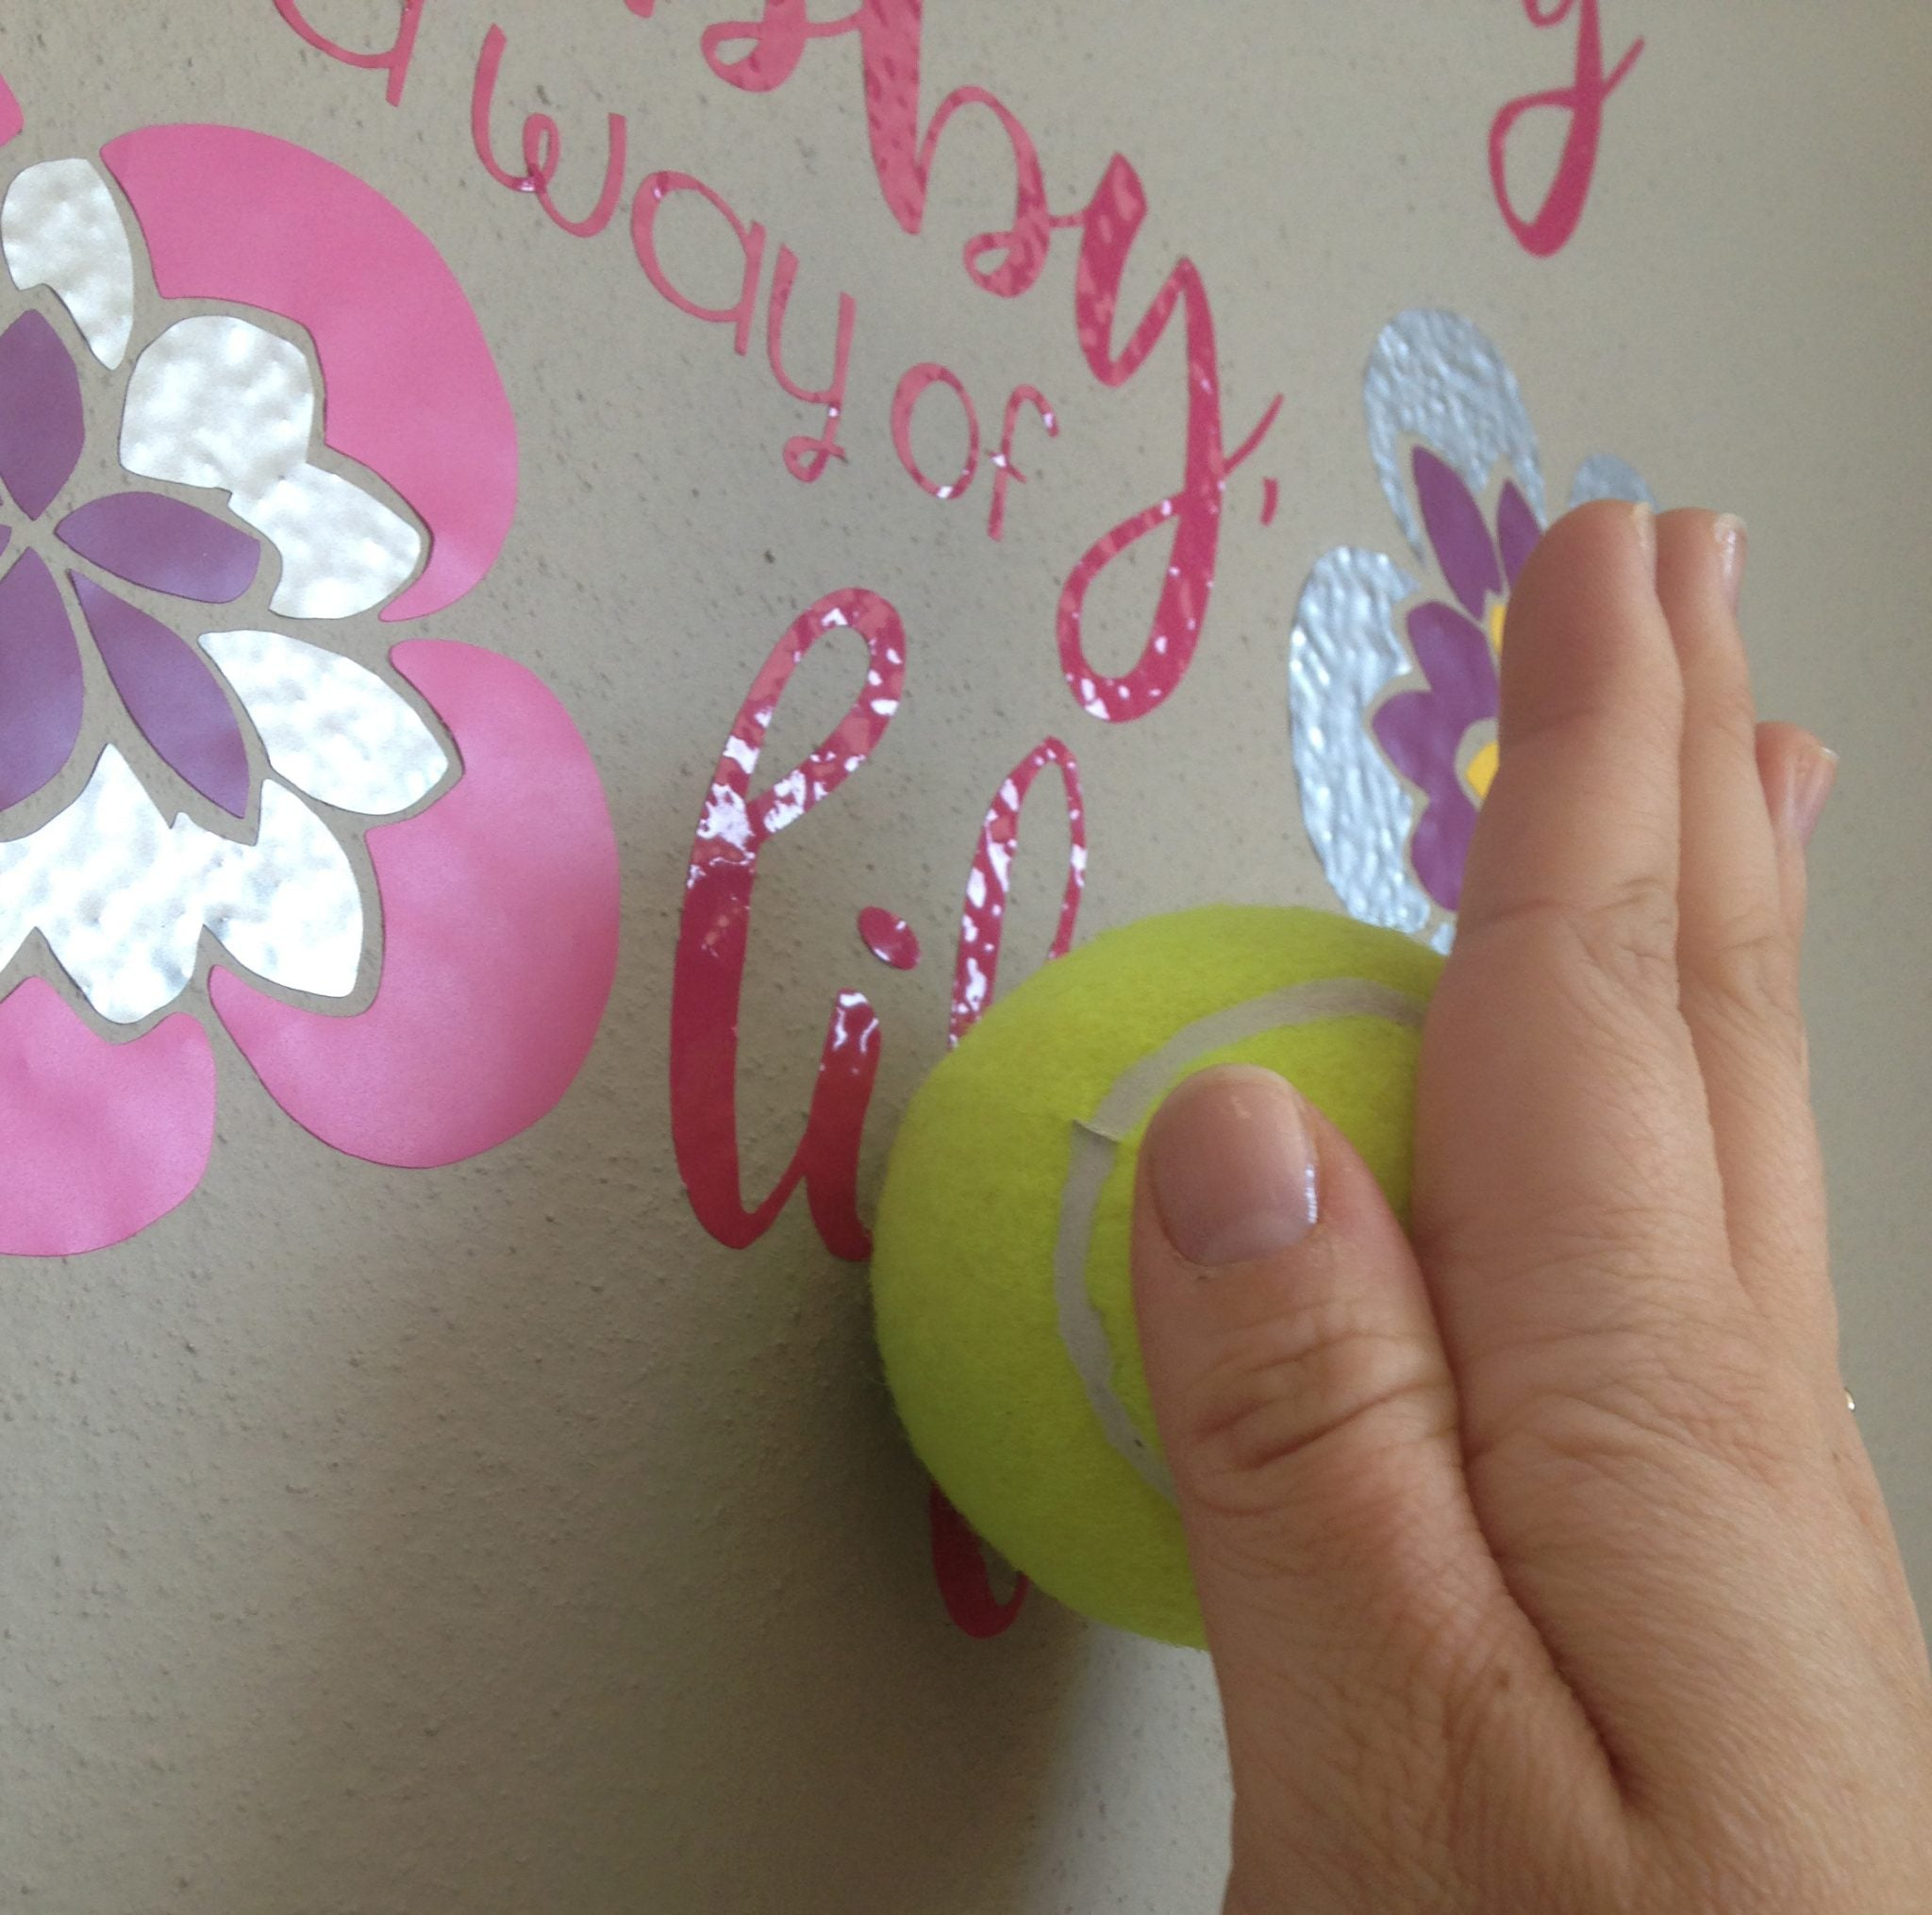 Use a tennis ball to apply vinyl to a textured surface. #vinylhack